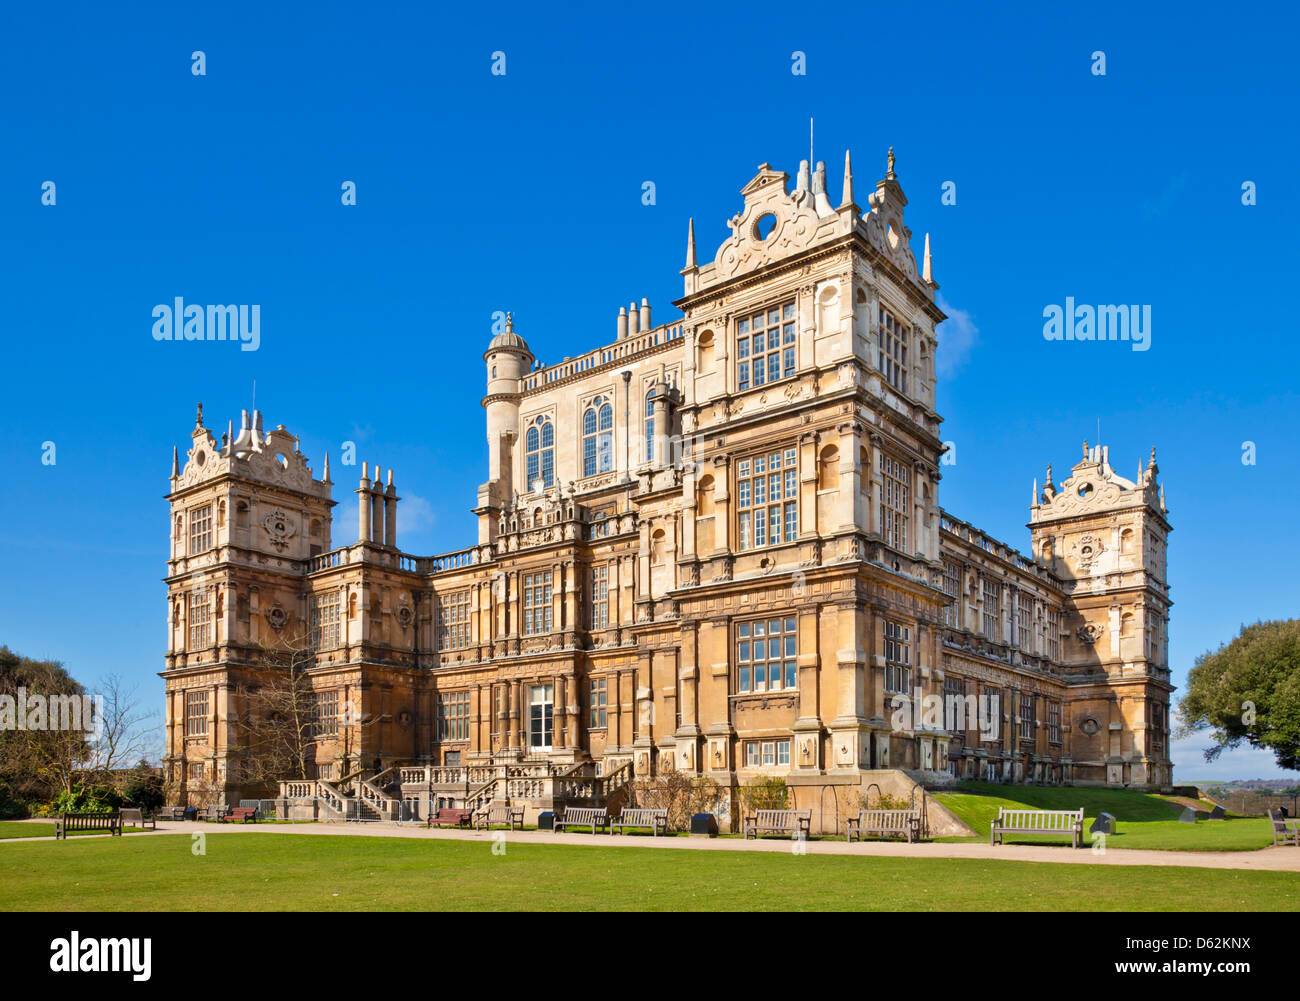 Wollaton Hall  museum  Wollaton Park Nottingham Nottinghamshire England UK GB EU Europe - Stock Image